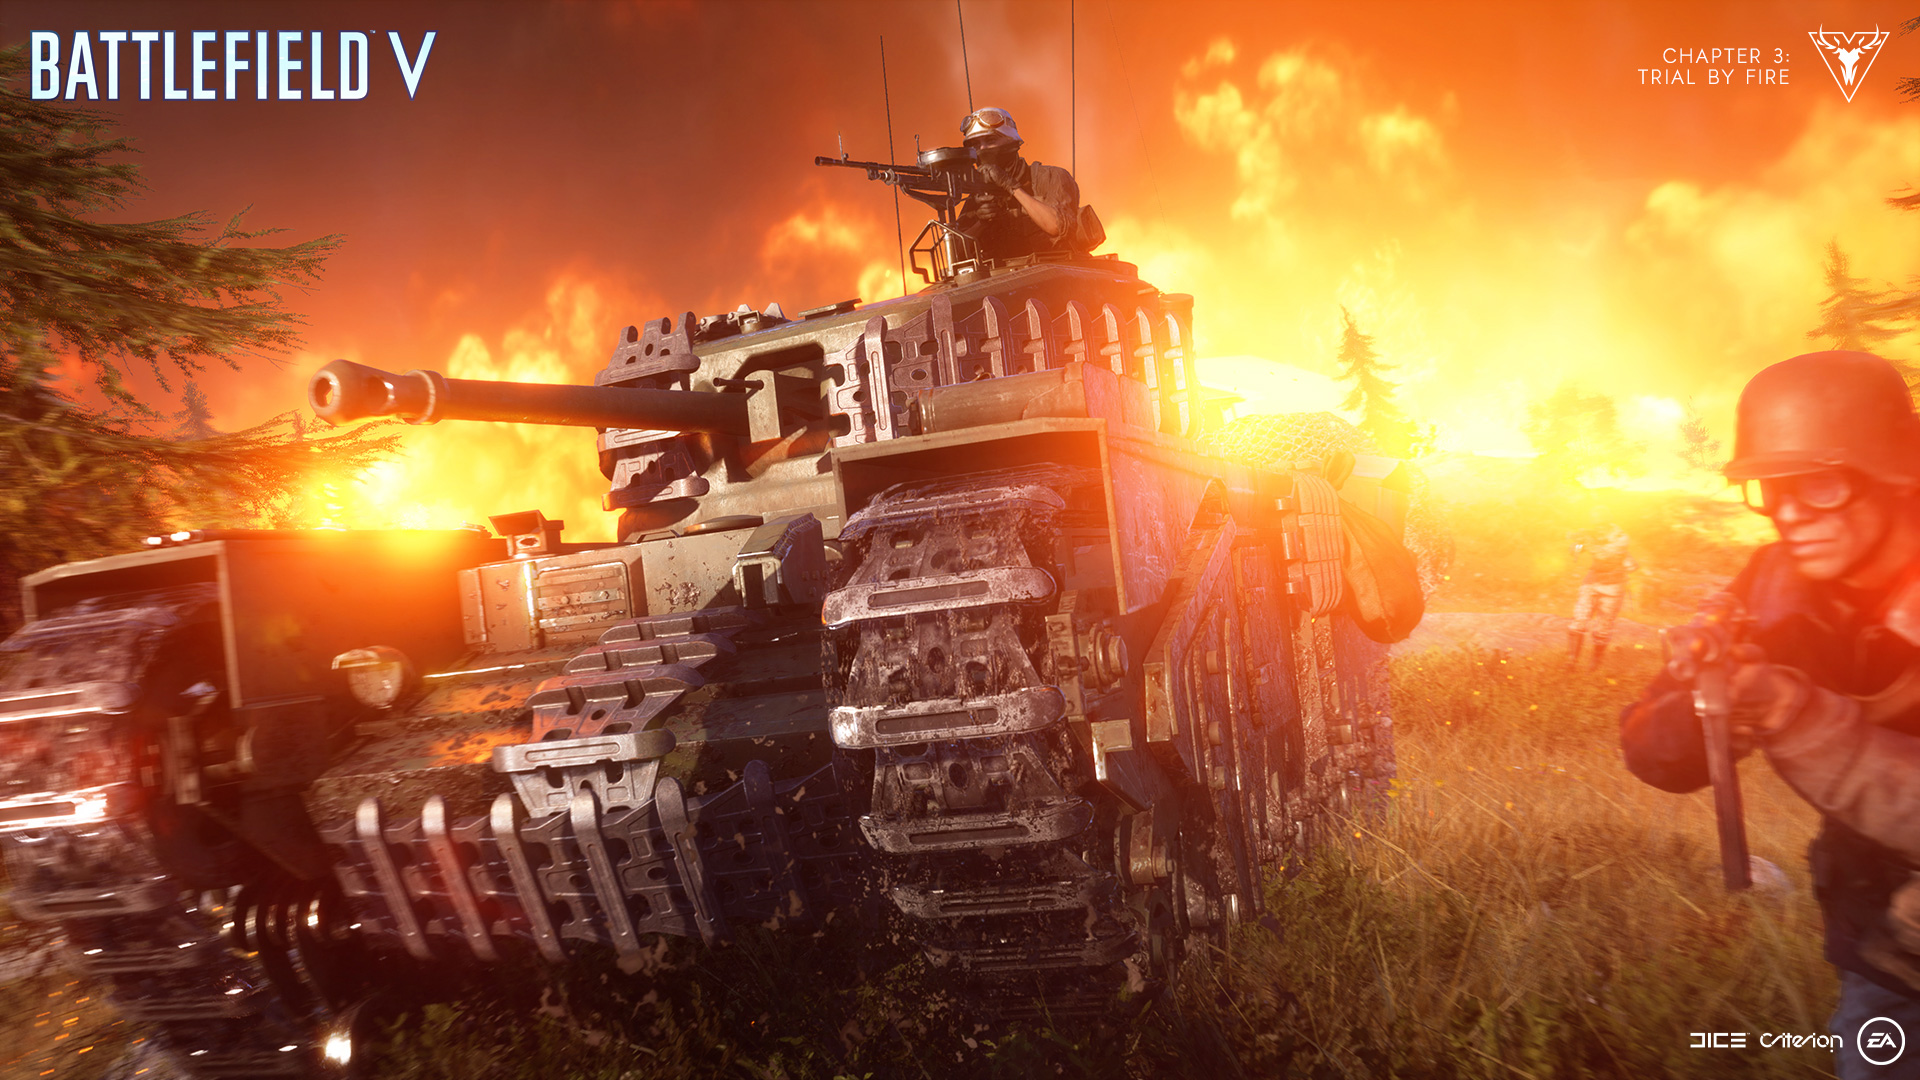 Need for Speed fans are in for a wait as EA taps Criterion to help finish Battlefield screenshot